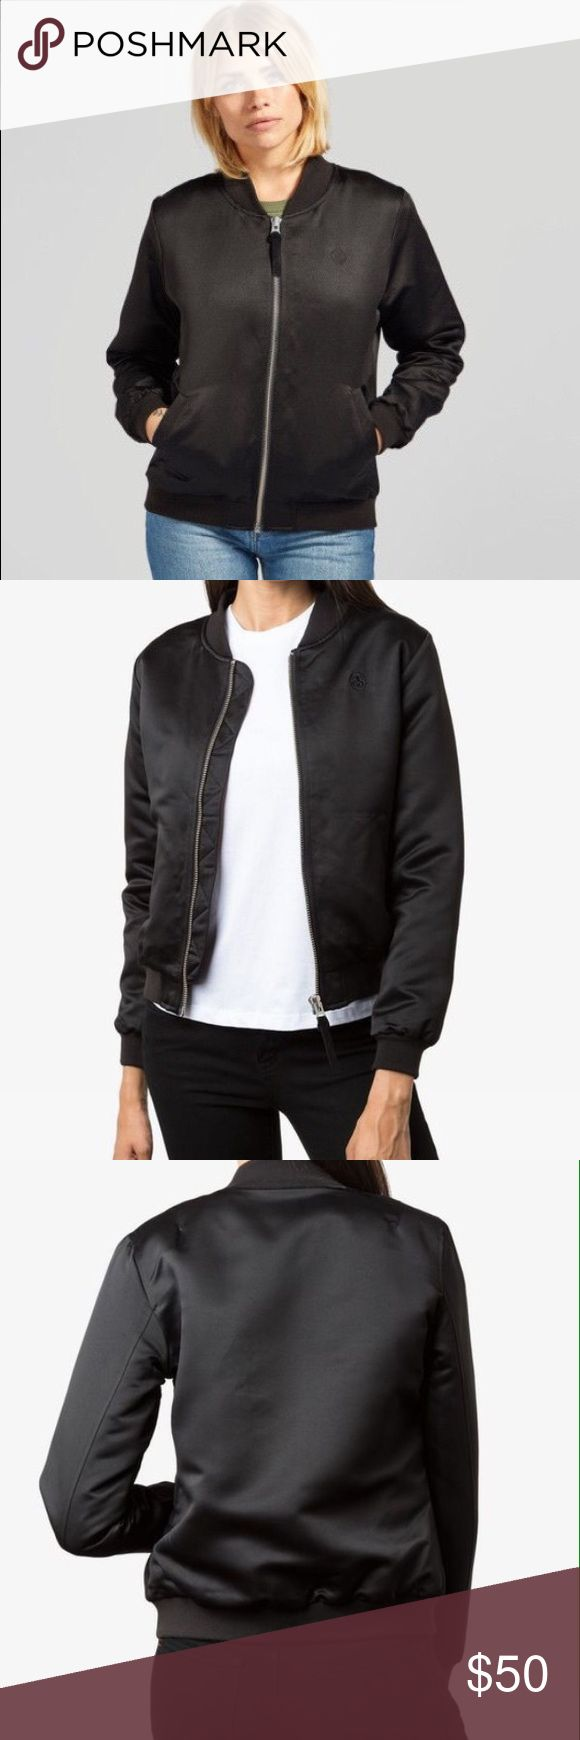 Stussy Bomber Jacket Women's Stussy Union Bomber Jacket. It has a nice, black sheen and a roomy feel even though it is an XS. Great condition! Stussy Jackets & Coats